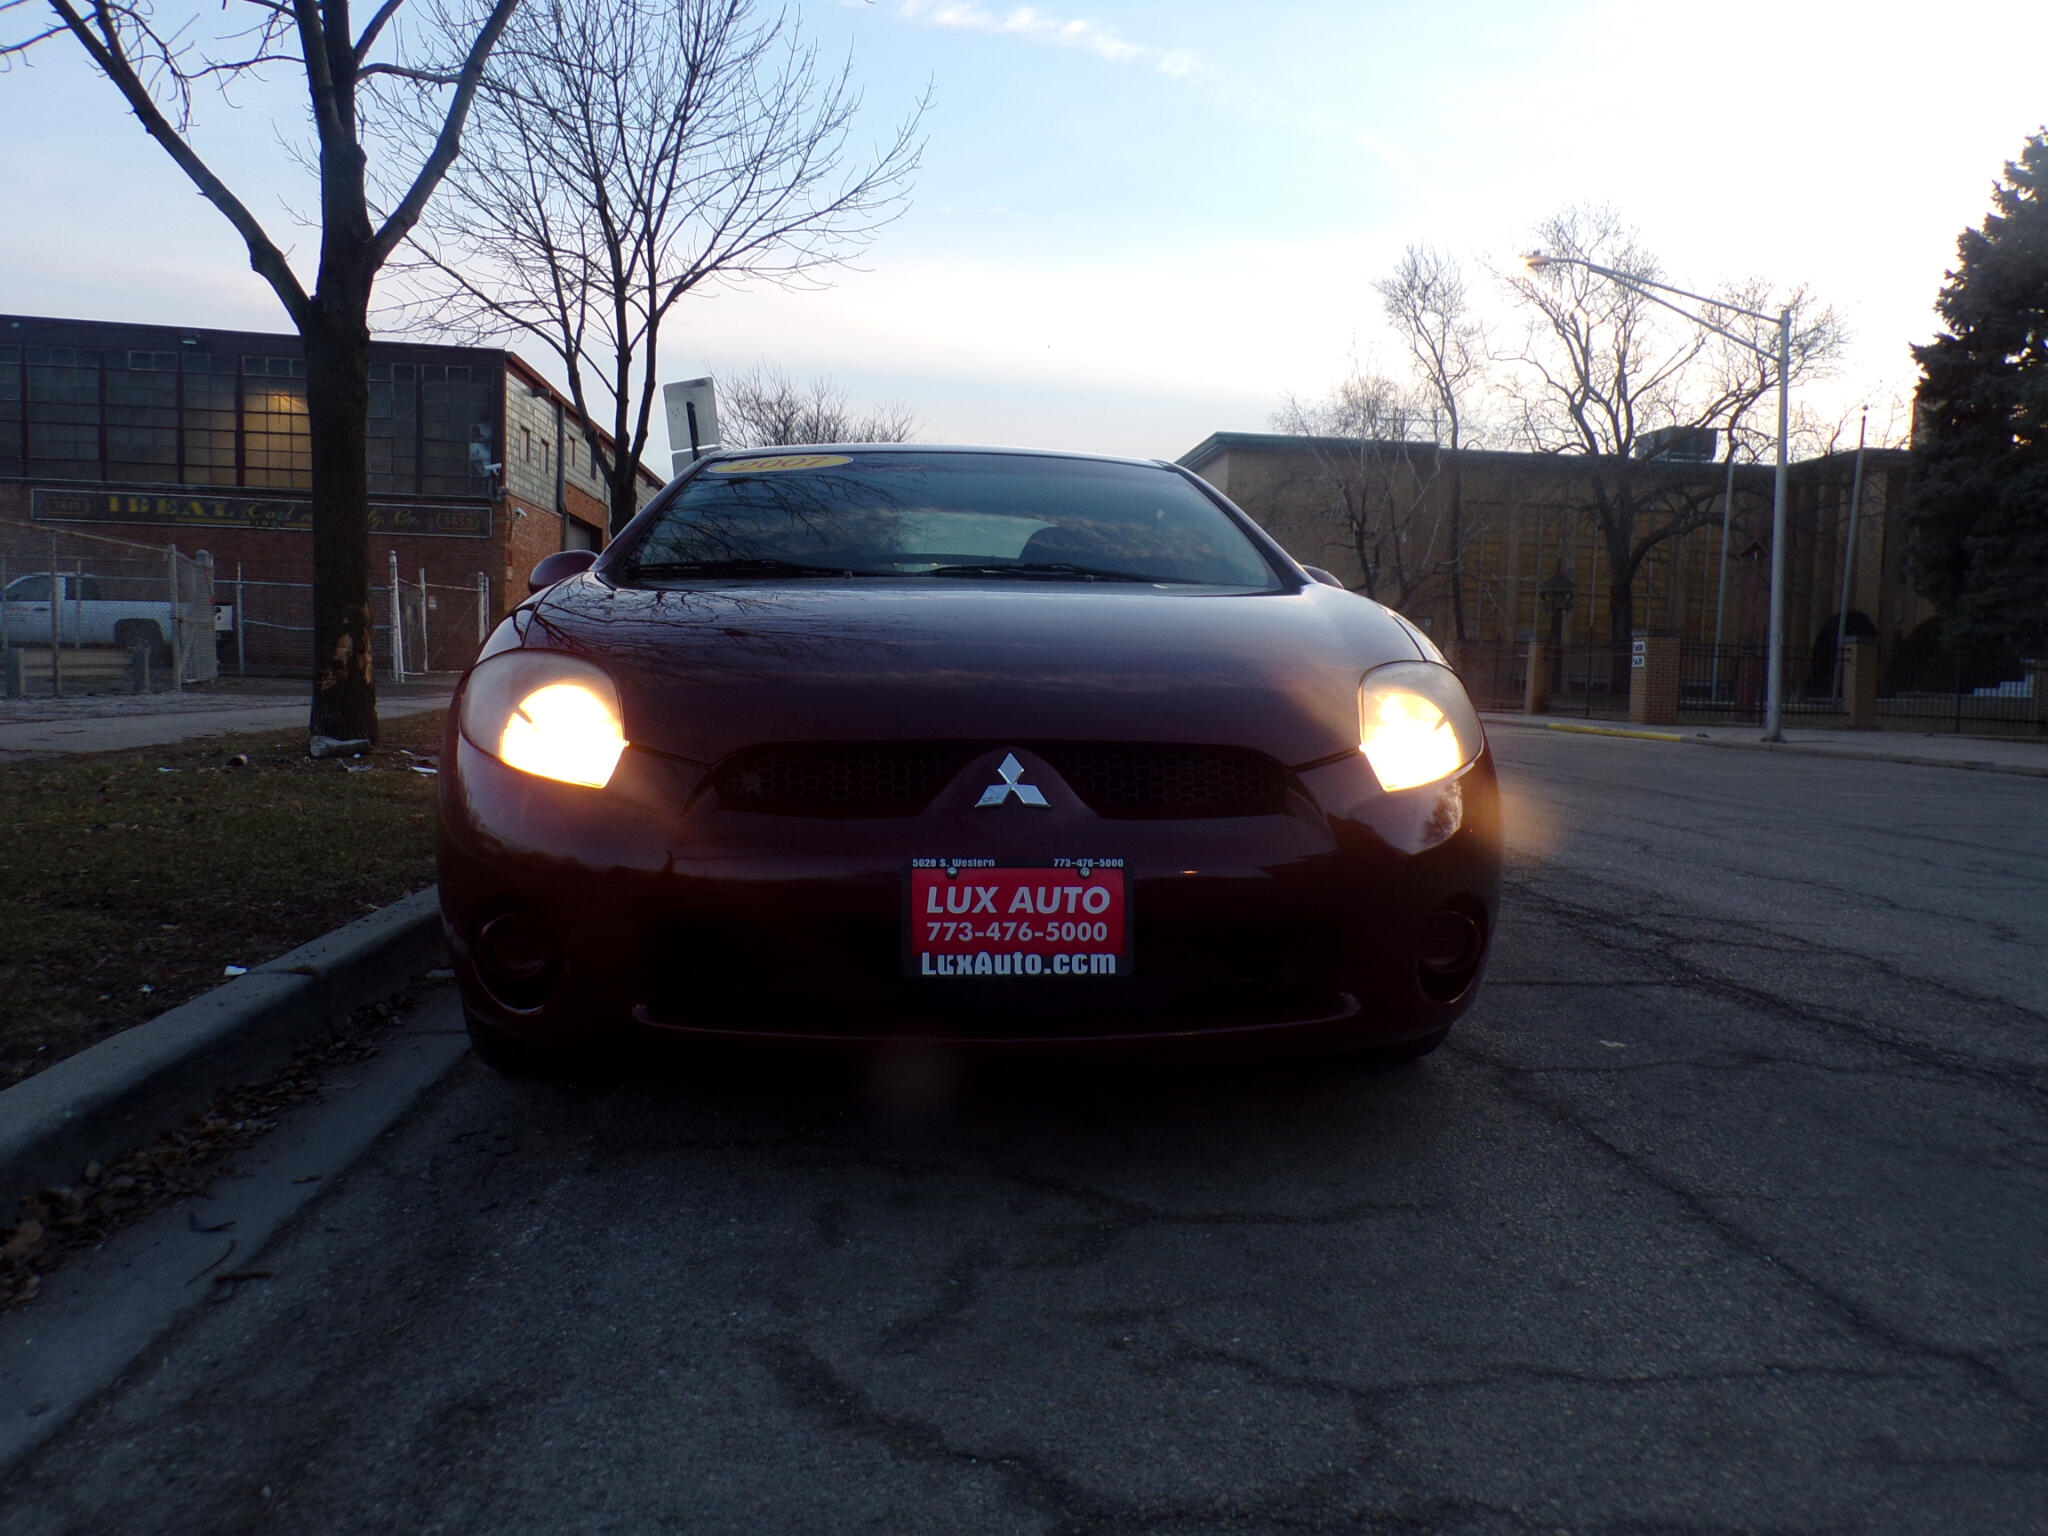 2007 Mitsubishi Eclipse 3dr Cpe Manual GS